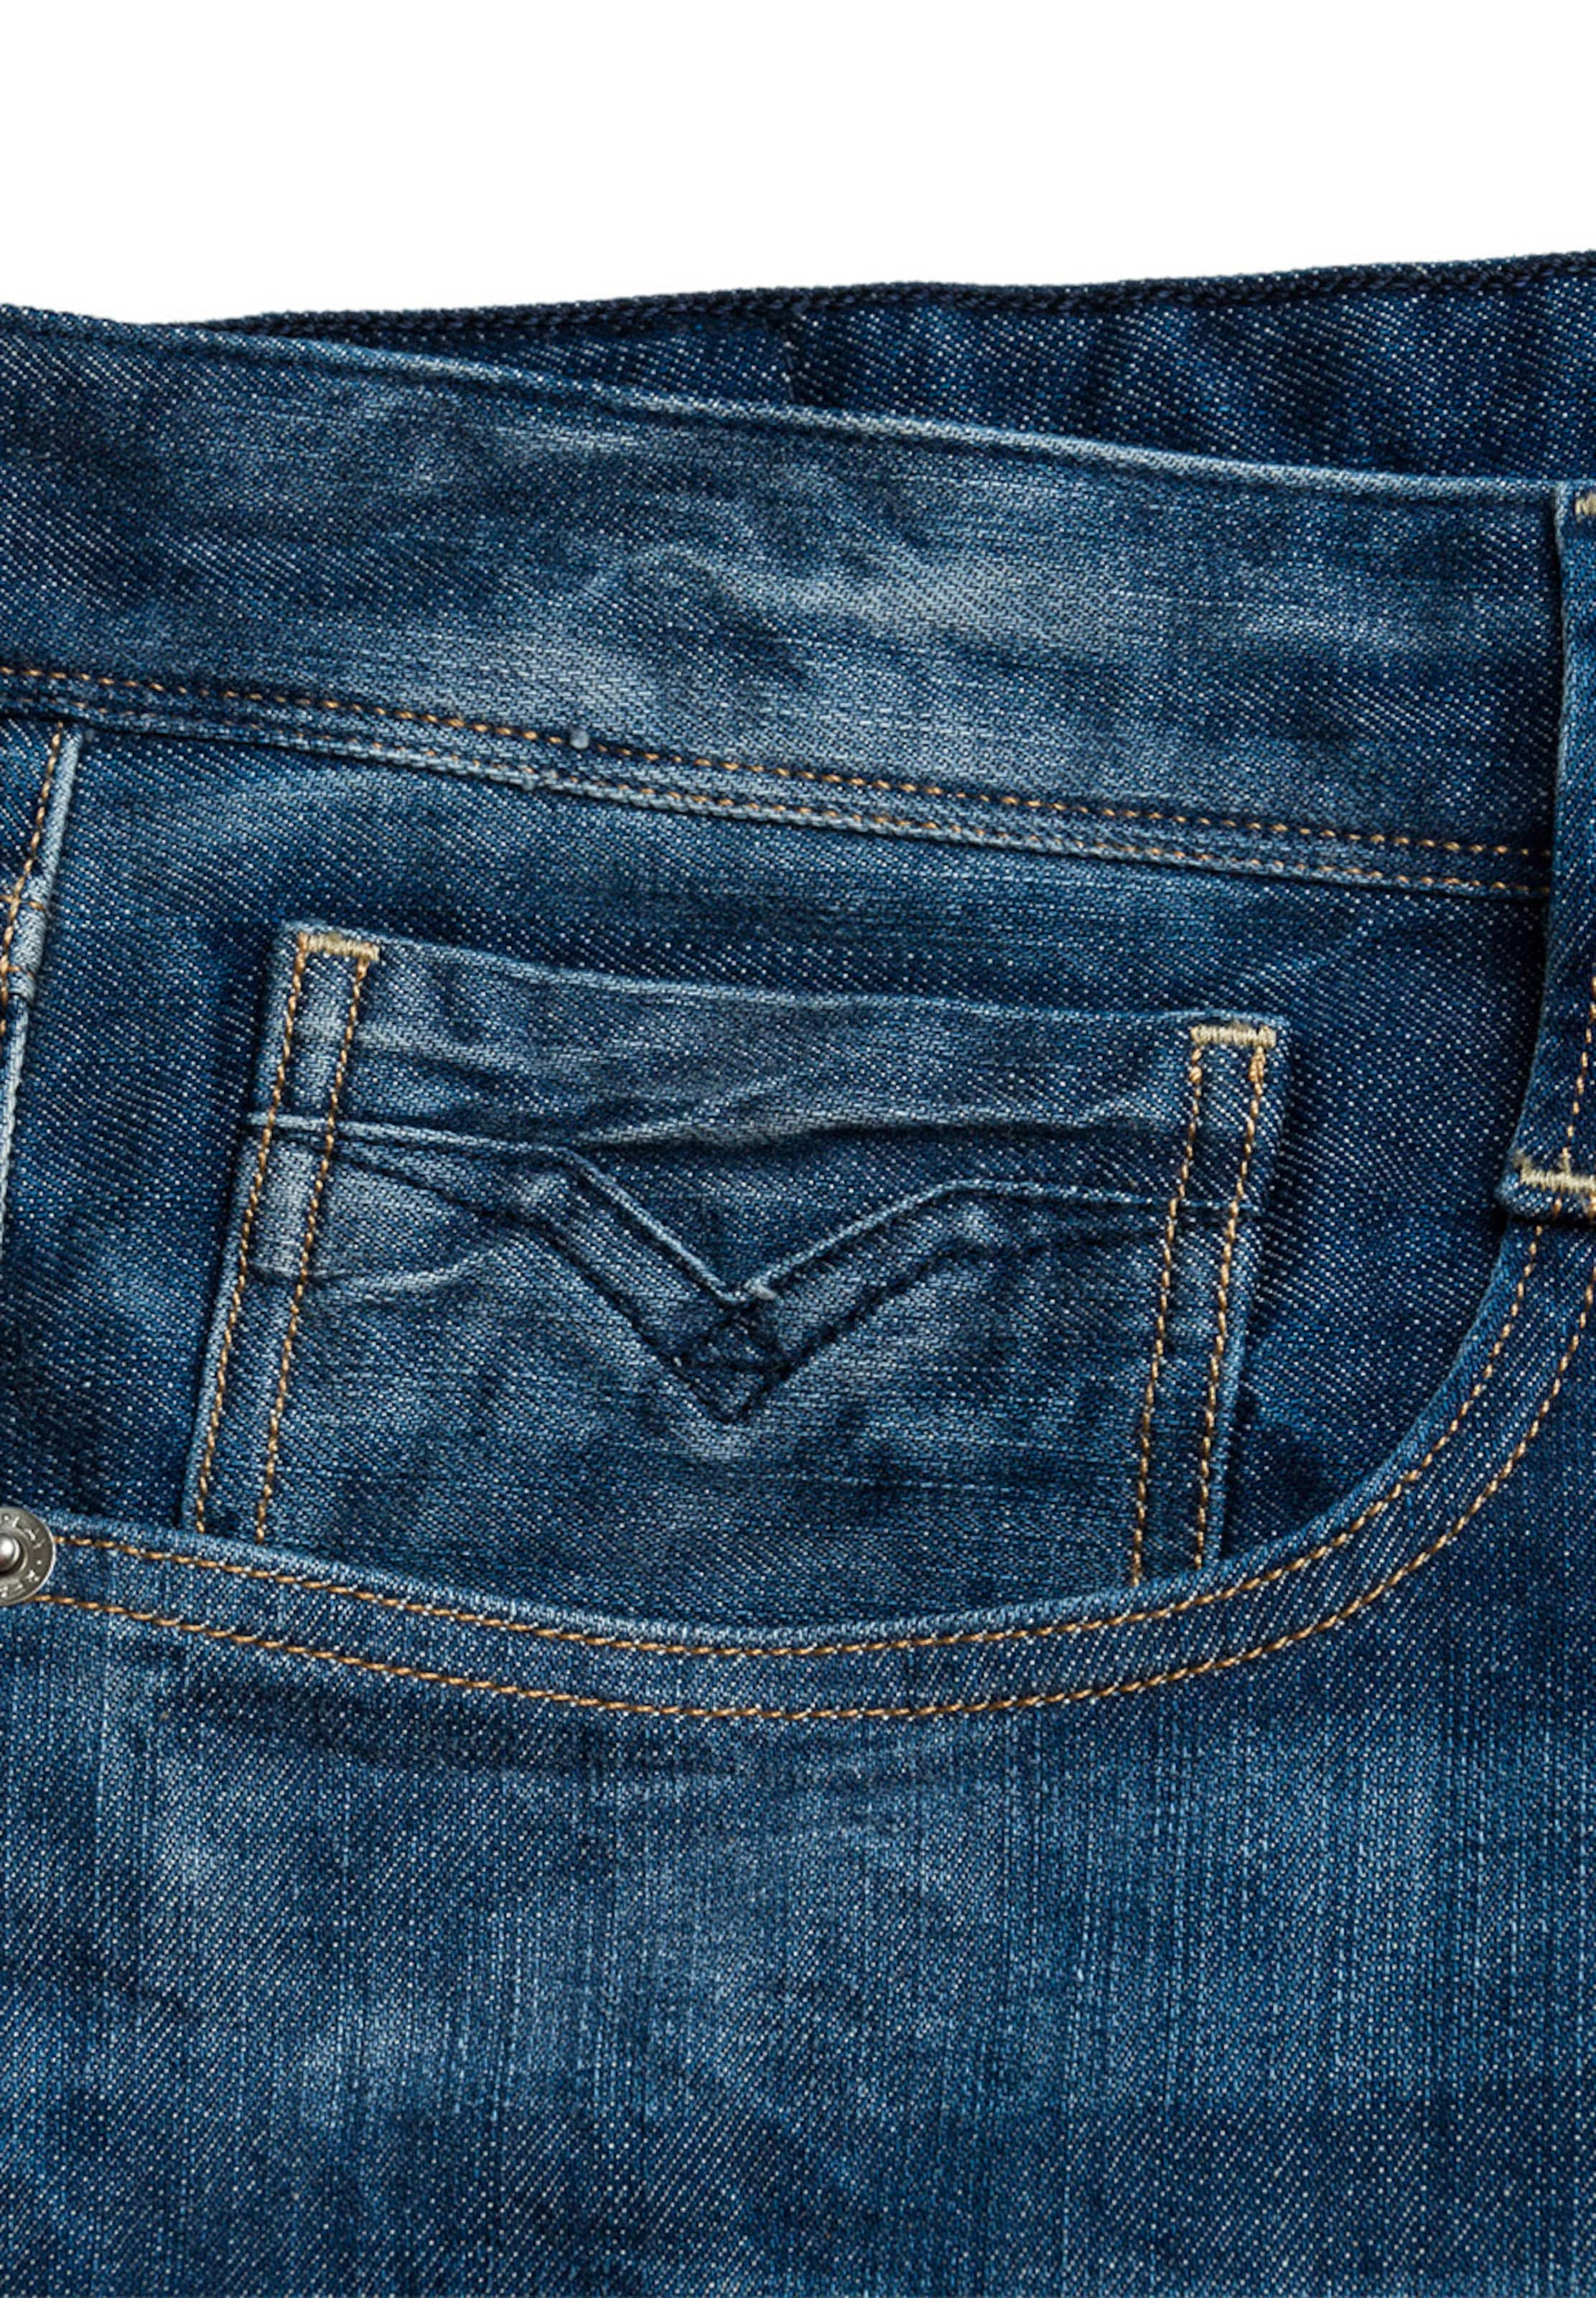 Comfort In Blue Denim Replay Jeans Anbass xshtQrdC